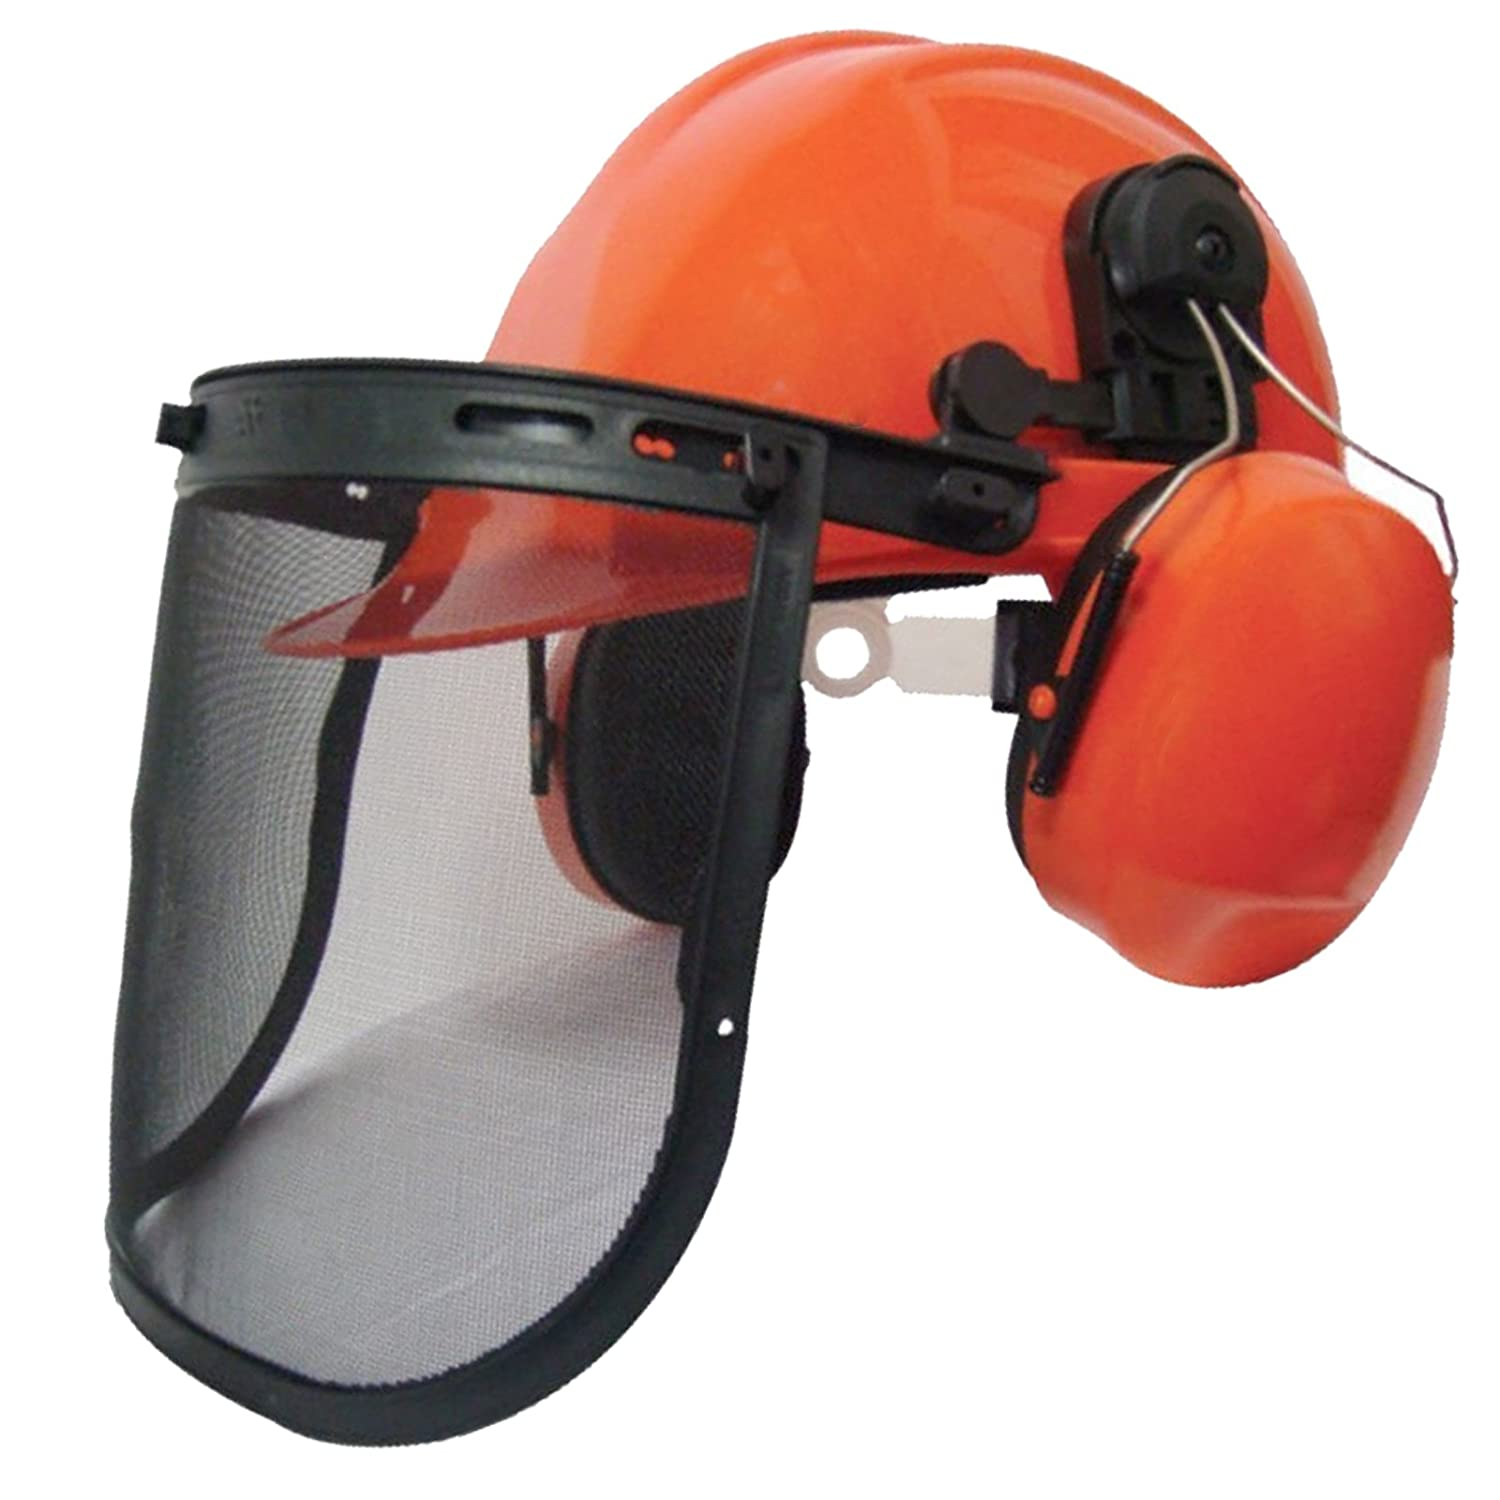 SPARES2GO Chainsaw Safety Helmet with Mesh Visor and Ear Muffs